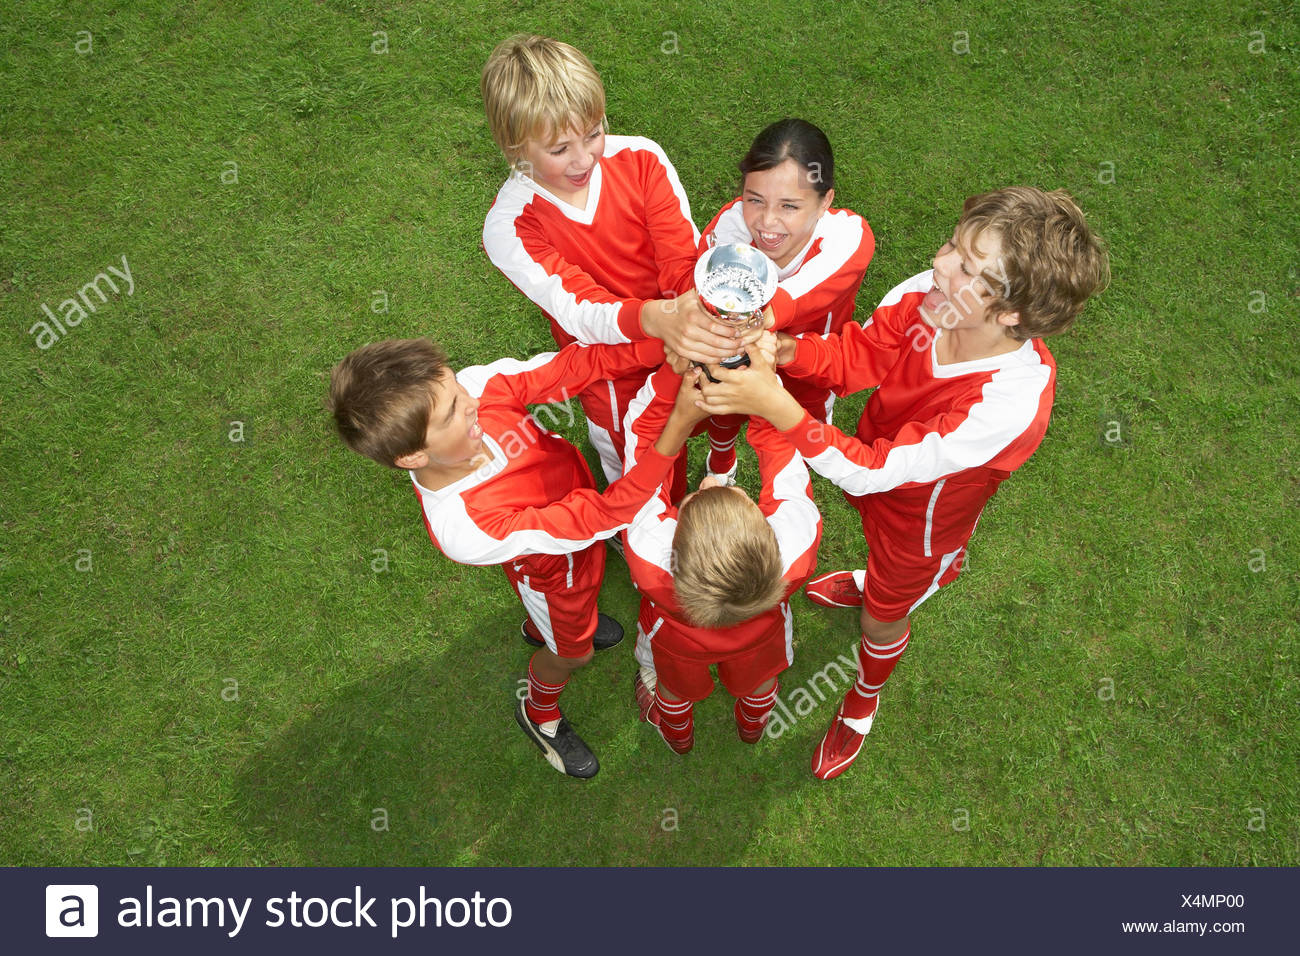 stock holding policy for a soccer club Discover more than 35 million cheap royalty-free images, vectors and videos fotolia is the image bank for all your publishing and marketing projects.